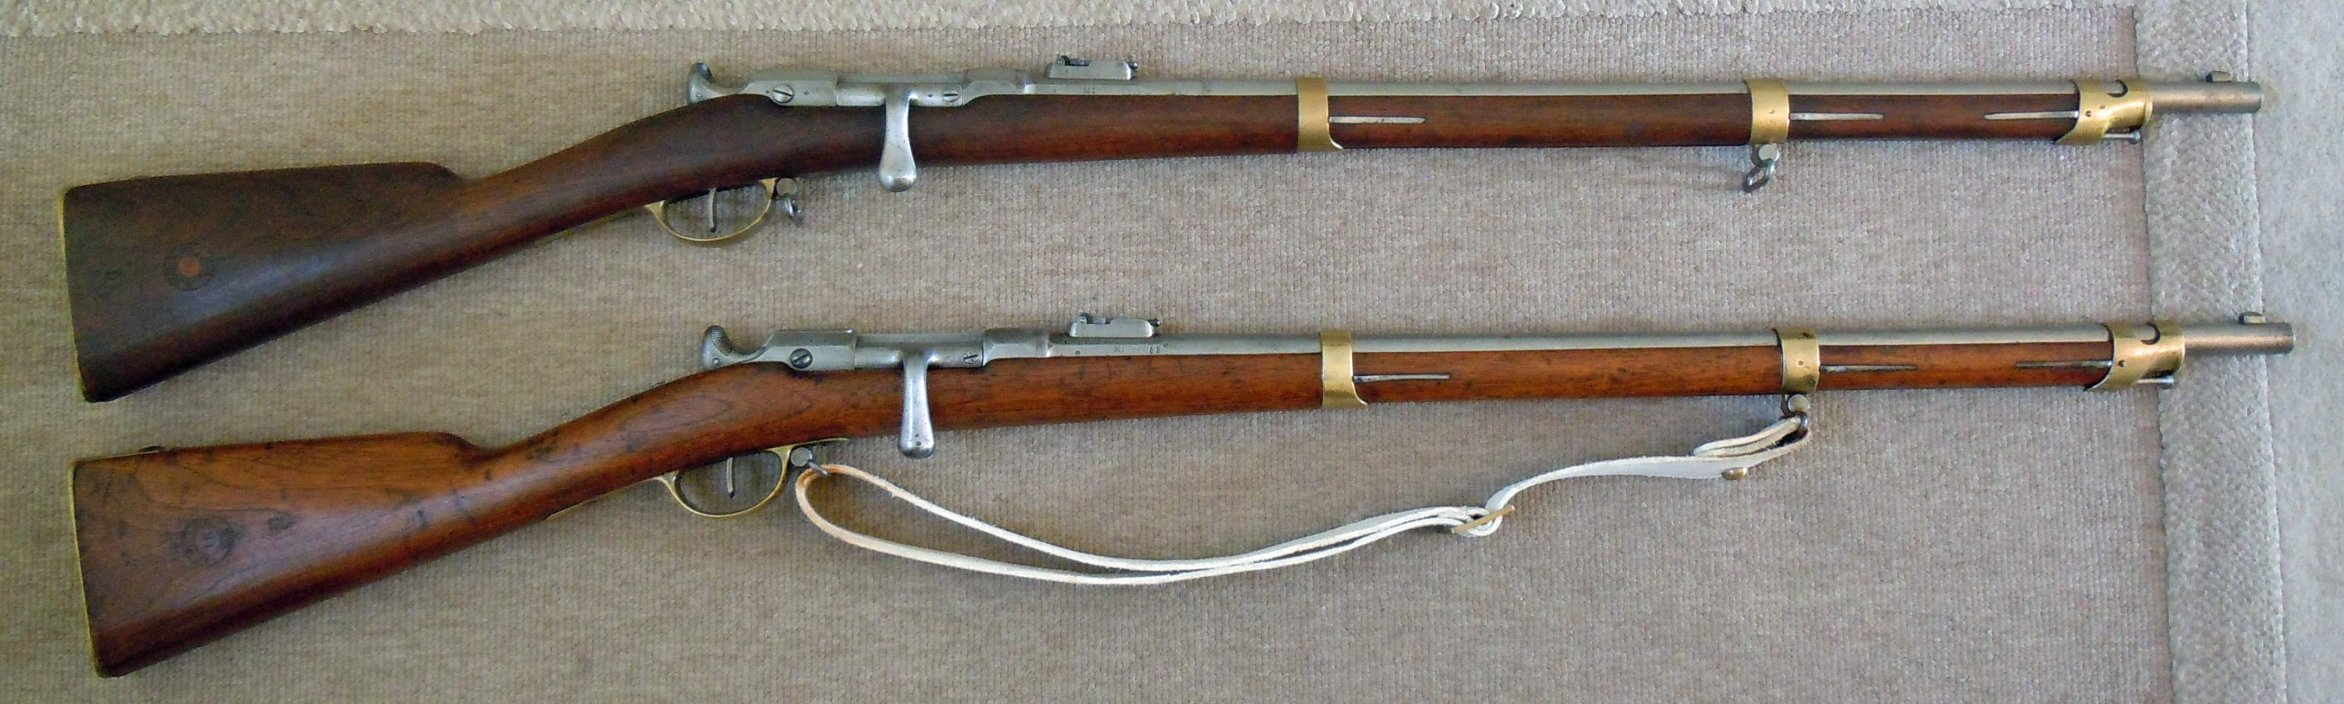 Chassepot carb 3.jpg